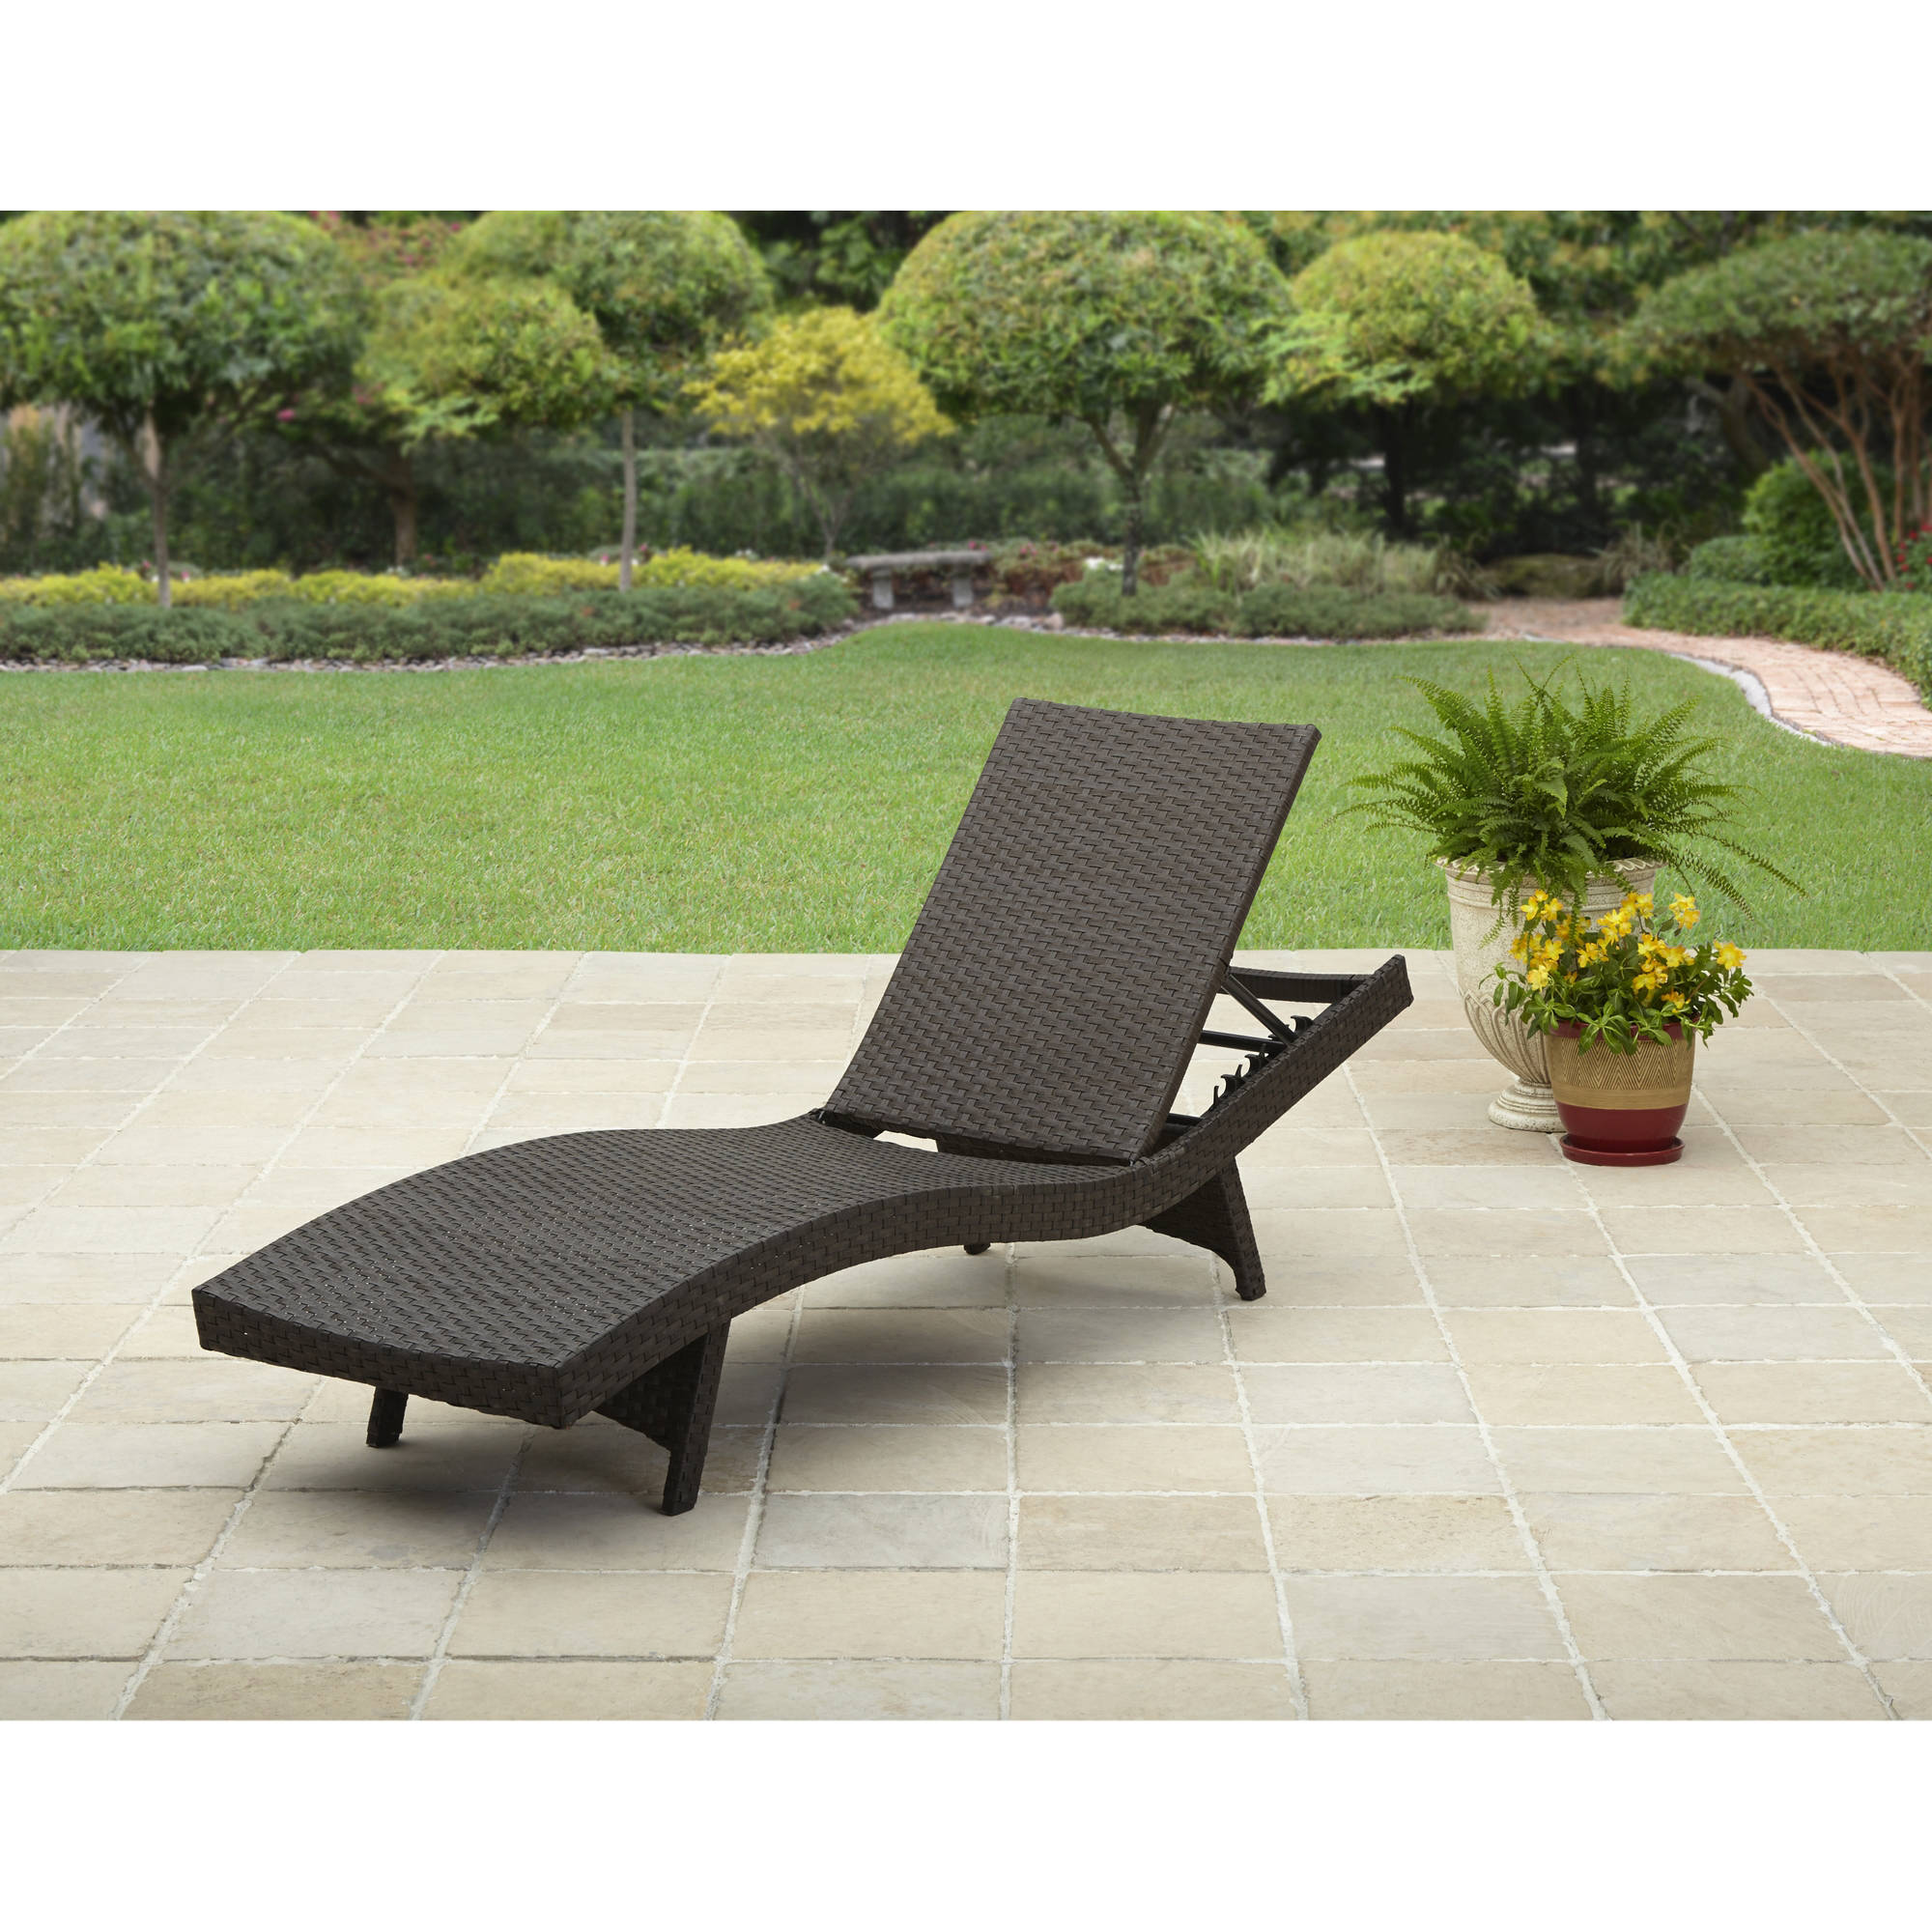 Patio Lounge Chairs House Architecture Design Outdoor Chaise Yard